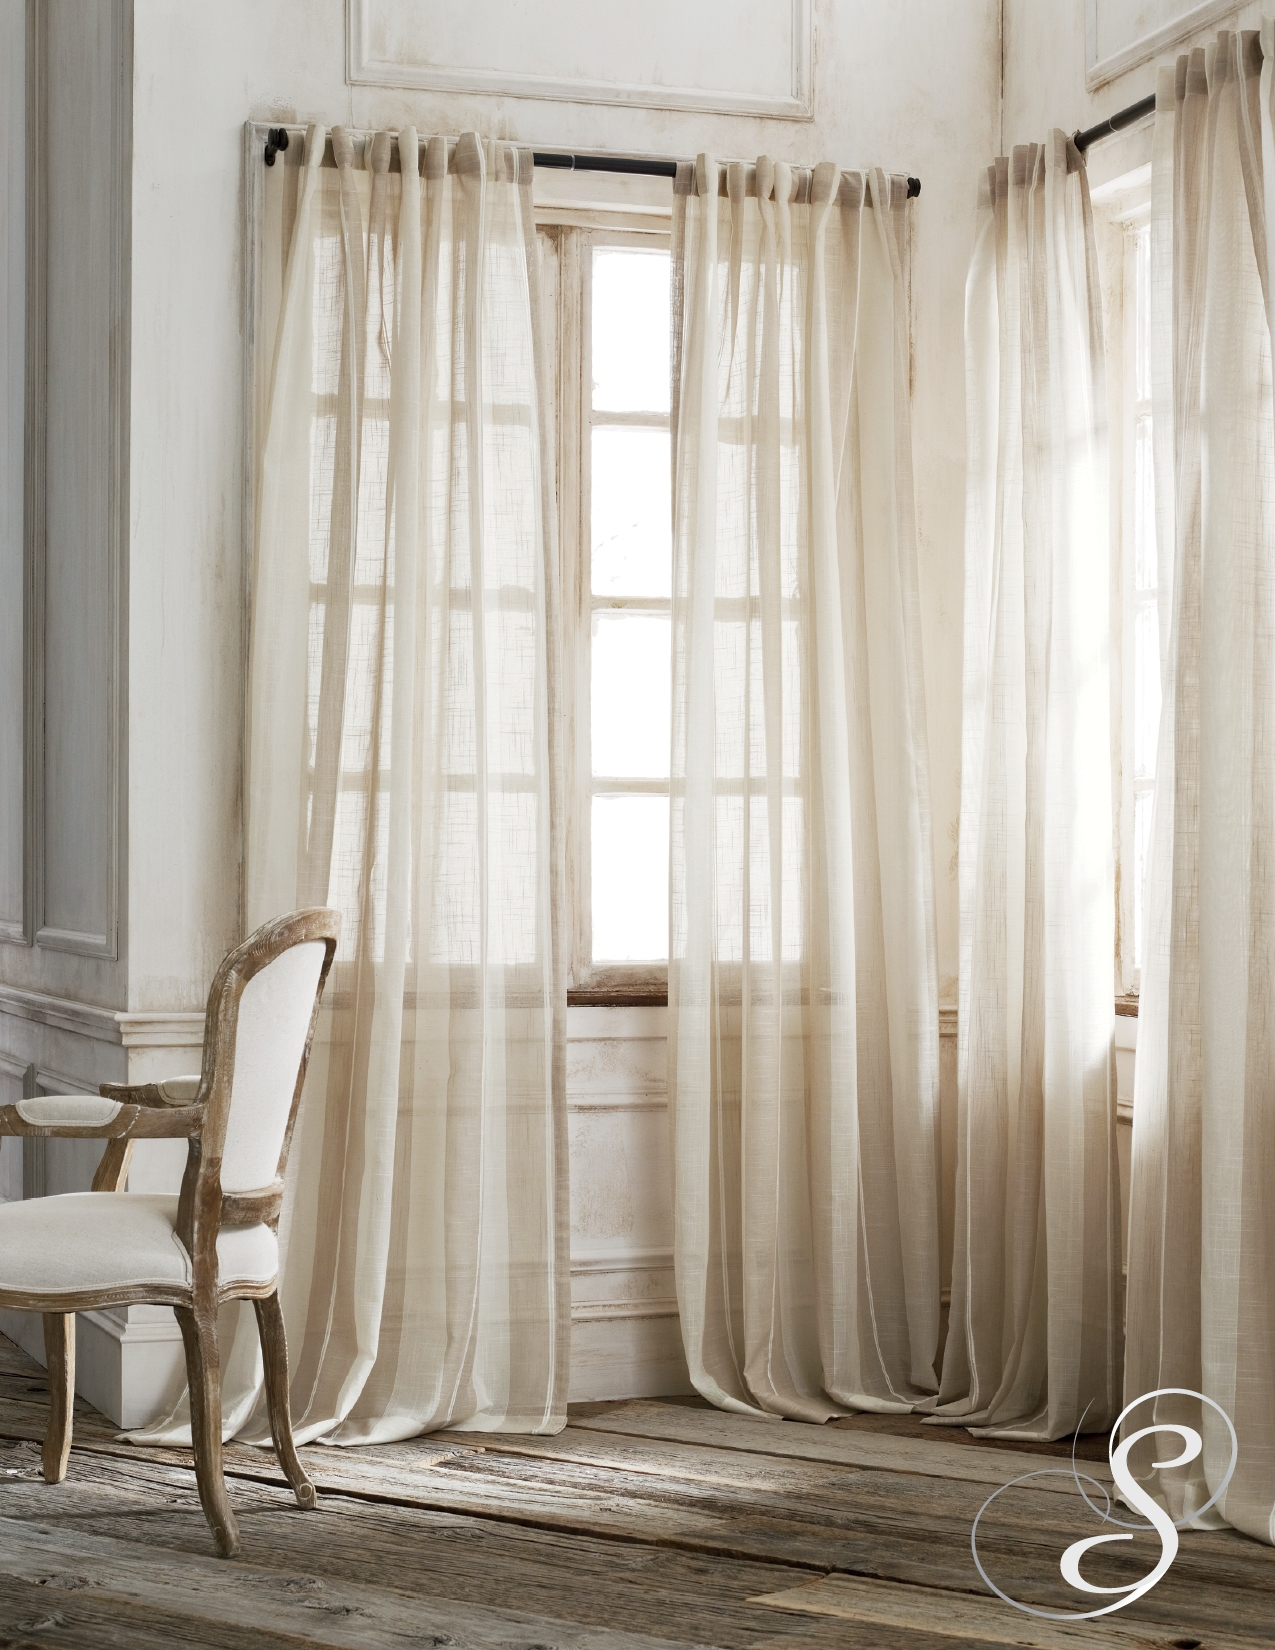 Homey Sheer Curtains For Front Door Windows And Sheer Curtain Within Linen Gauze Curtains (Image 7 of 15)